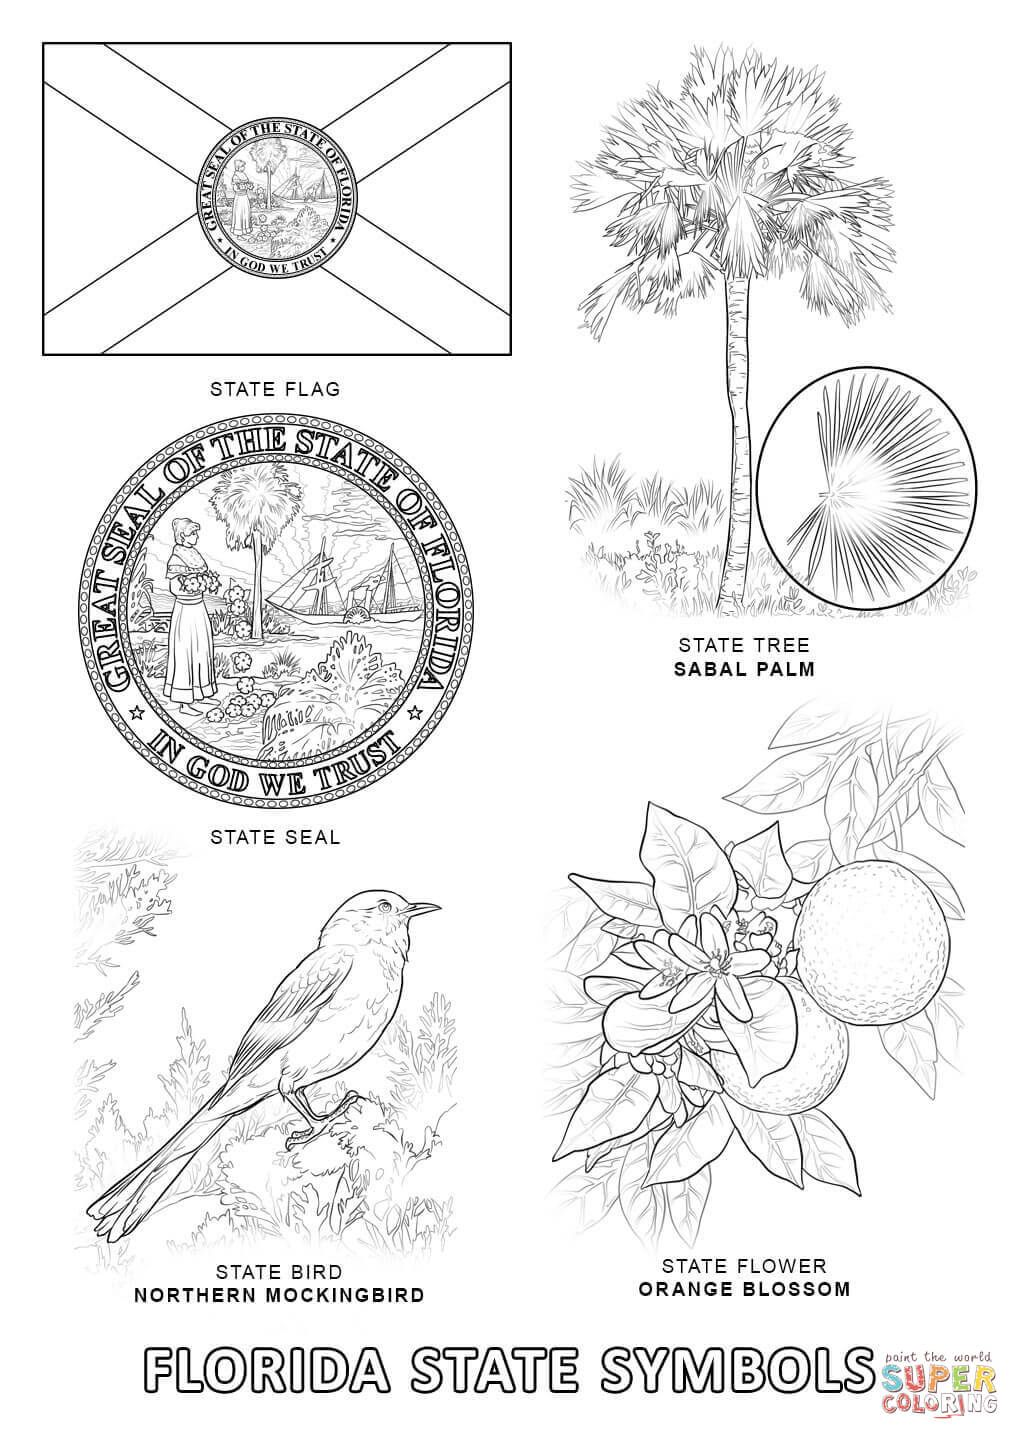 Florida State Symbols Coloring Page From Florida Category Select